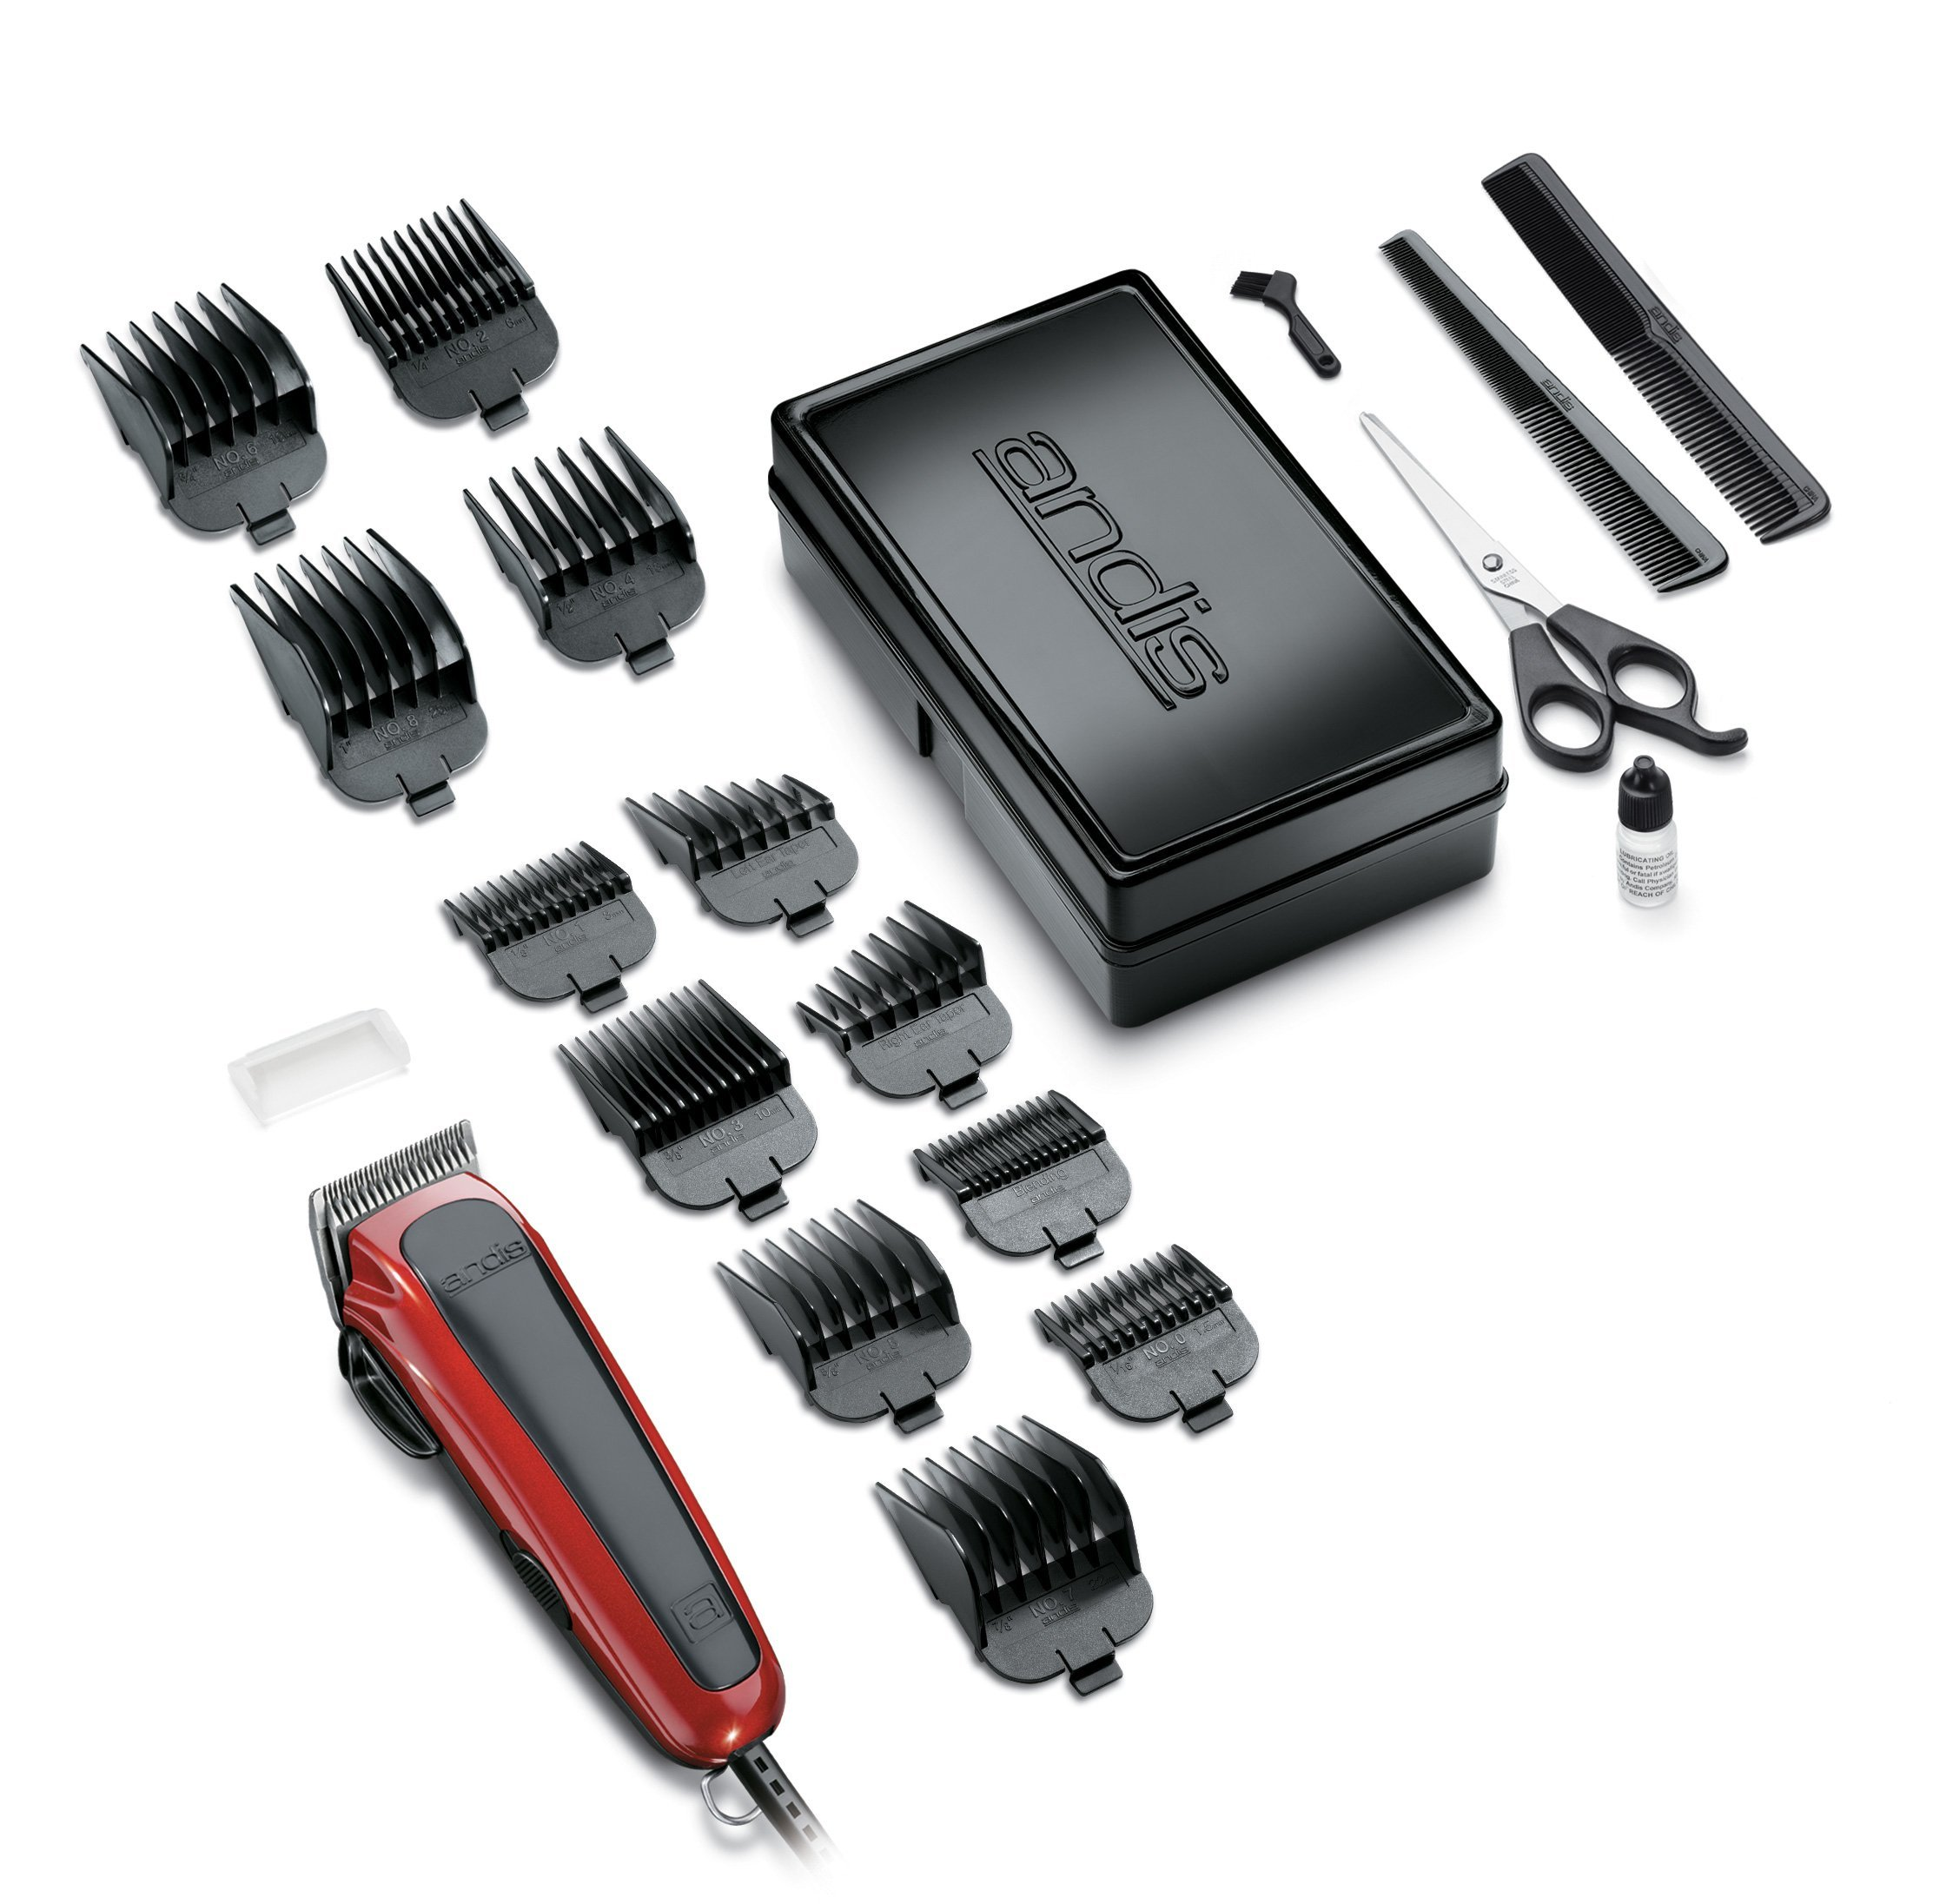 Andis Easy Cut 20-Piece Haircutting Kit, Red/Black (75360) by Andis (Image #1)